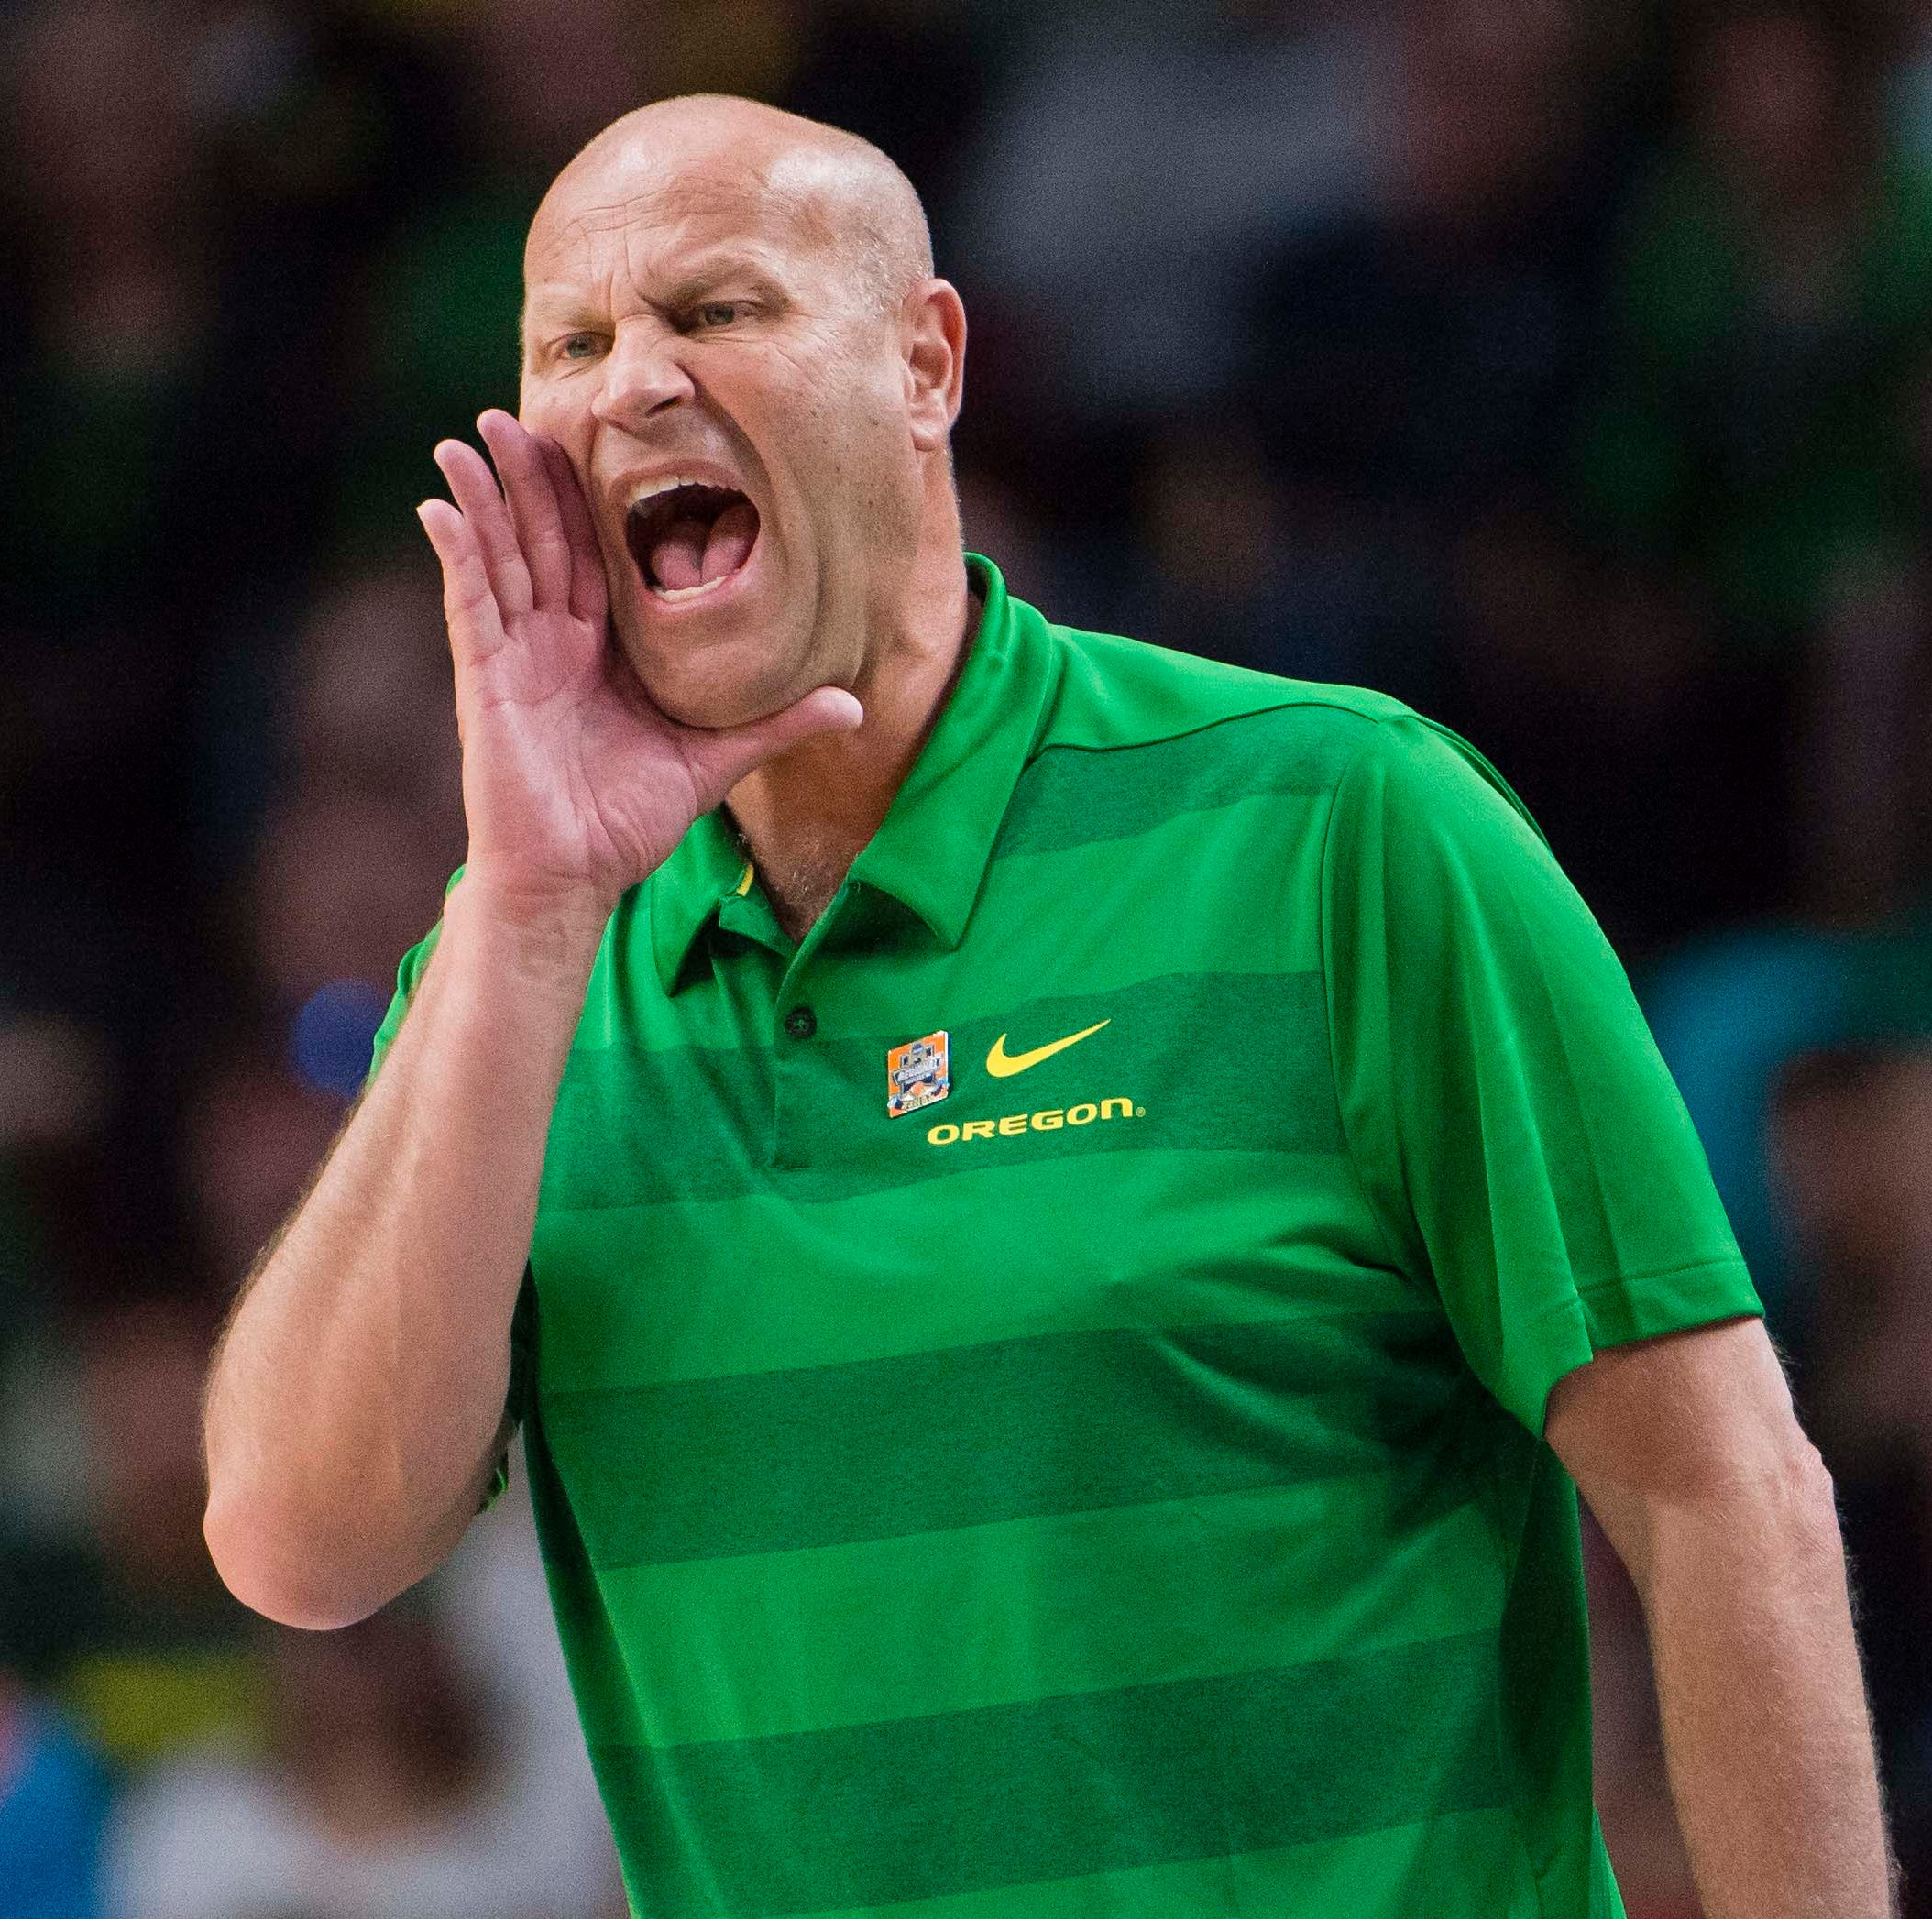 Ducks' coach Kelly Graves, set to coach in Final Four, was once a St. George bball standout